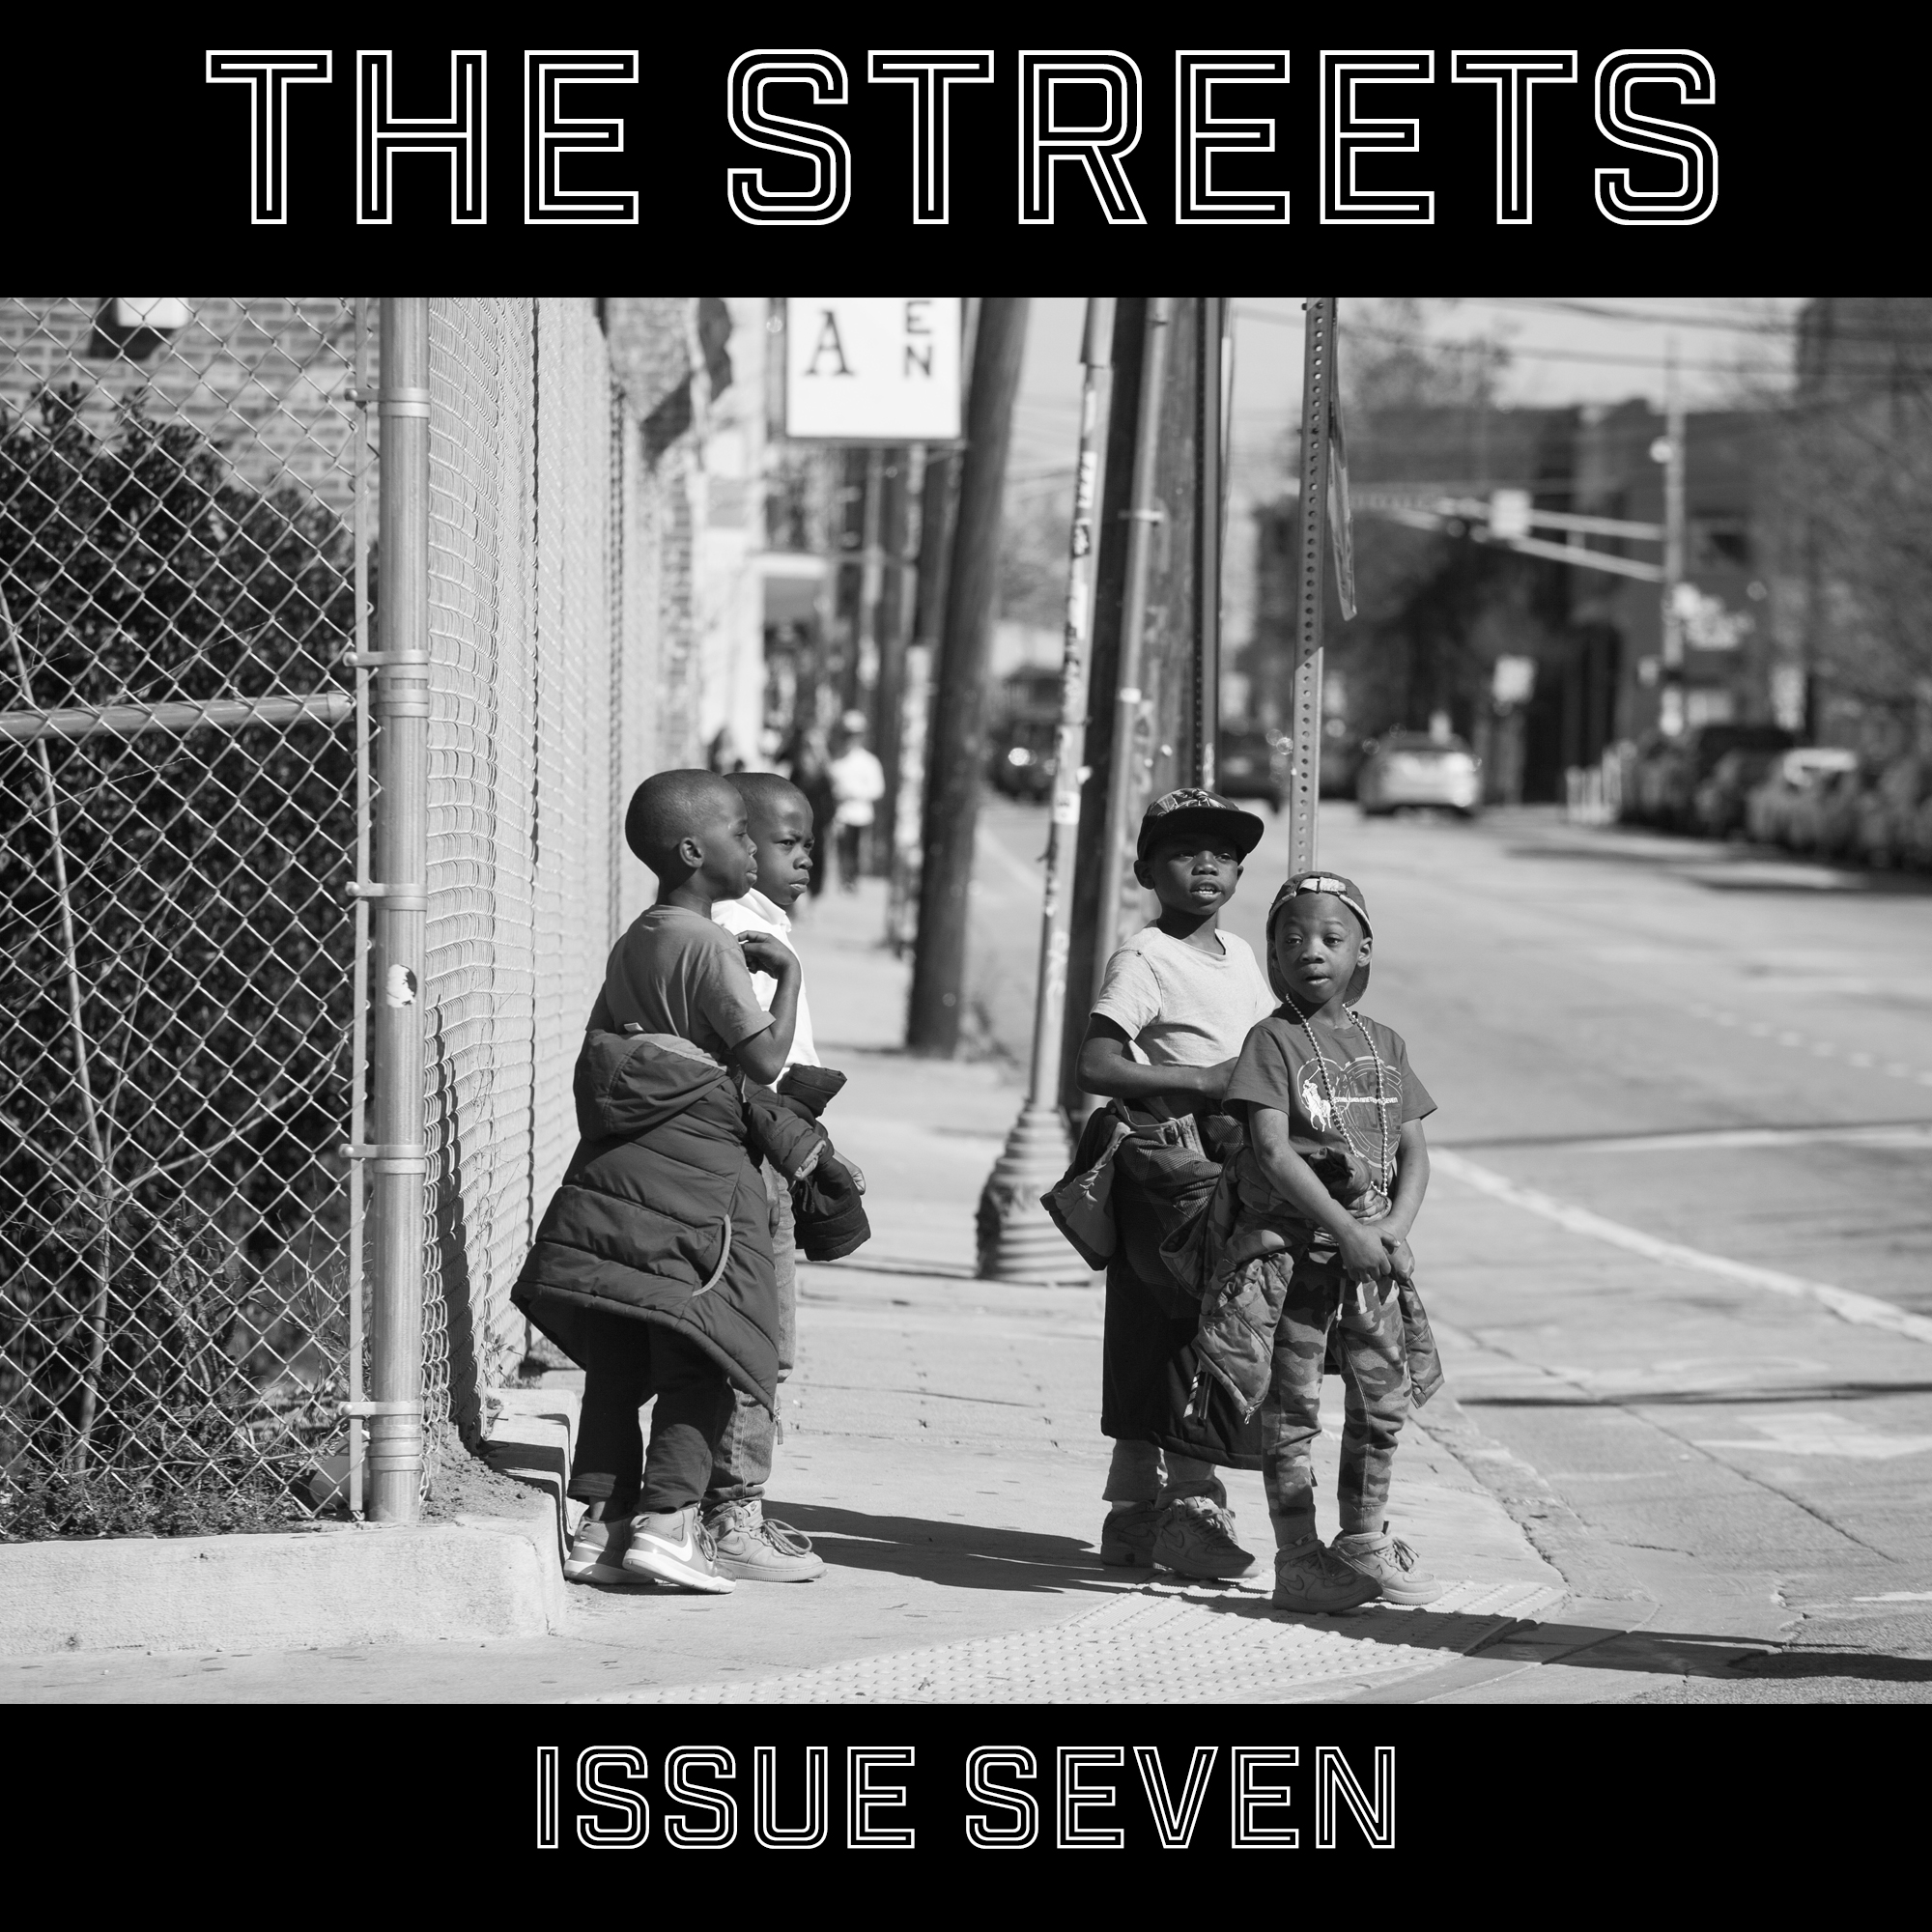 THE STREETS - Issue Seven